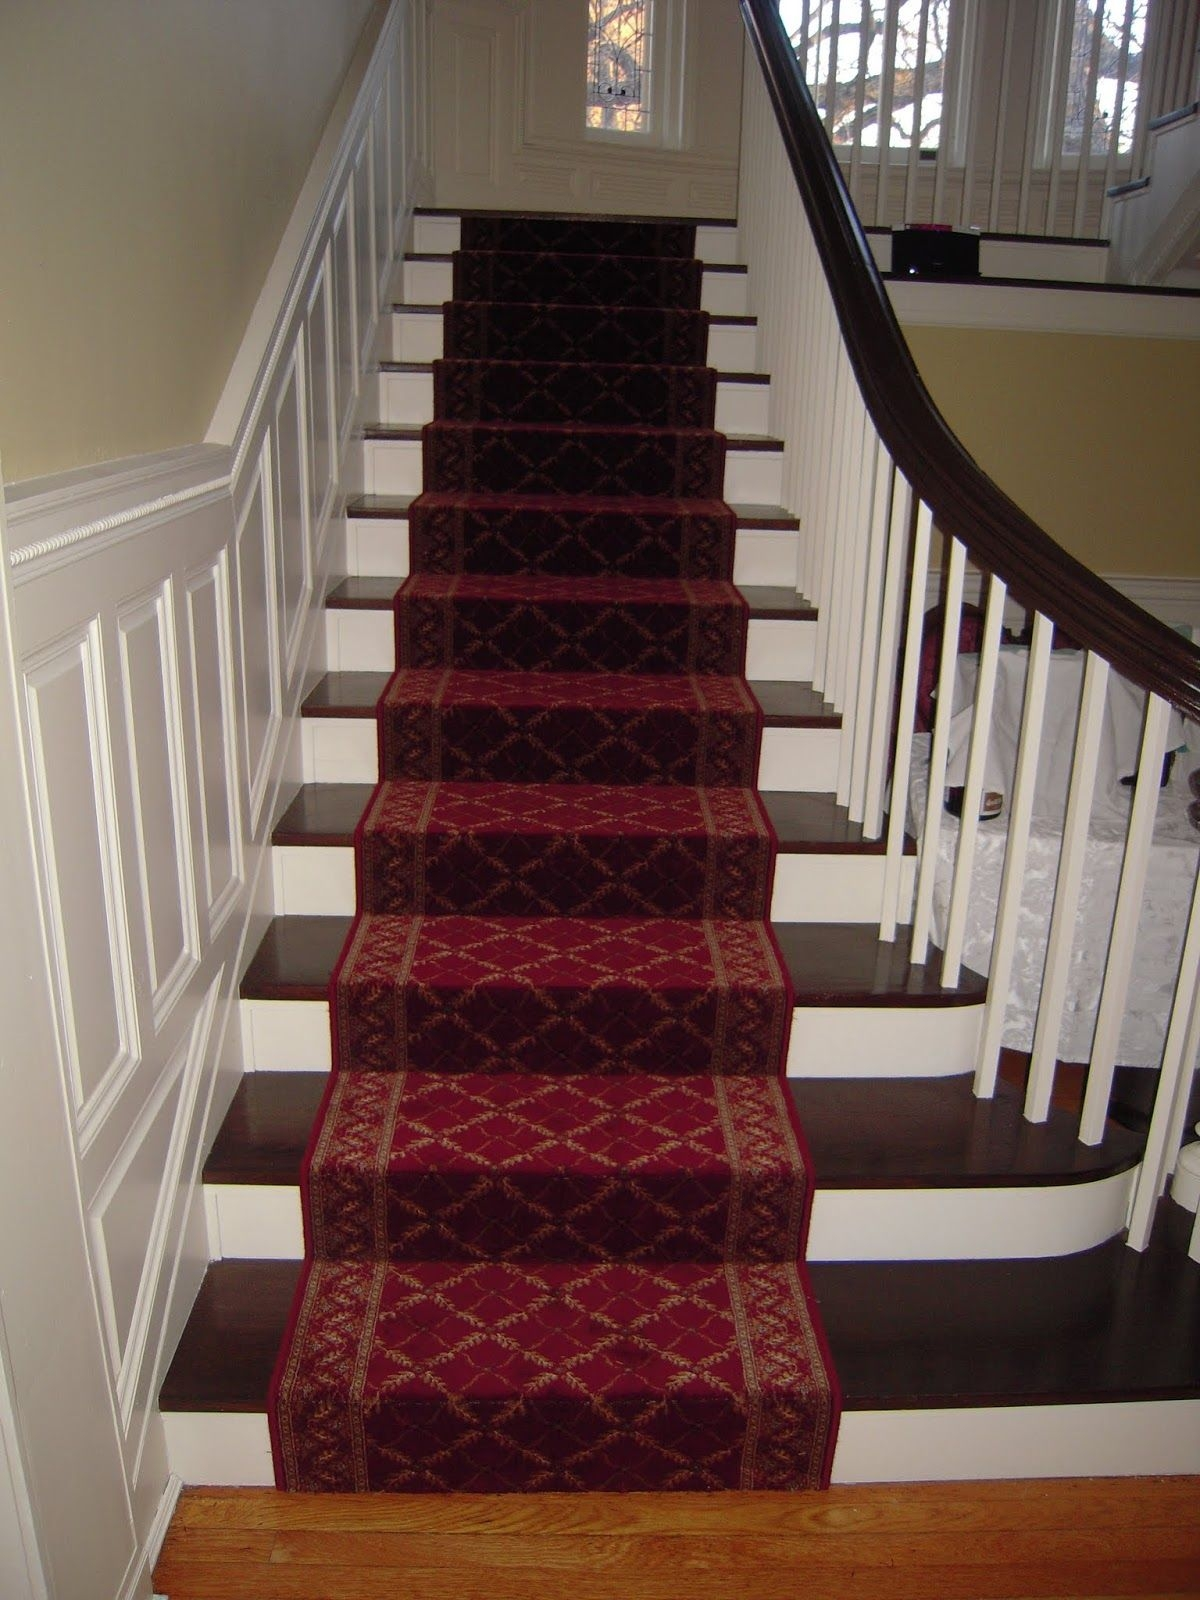 Flooring Pretty Stair Treads Carpet For Stair Decoration Idea Throughout Oriental Rug Stair Treads (#8 of 20)